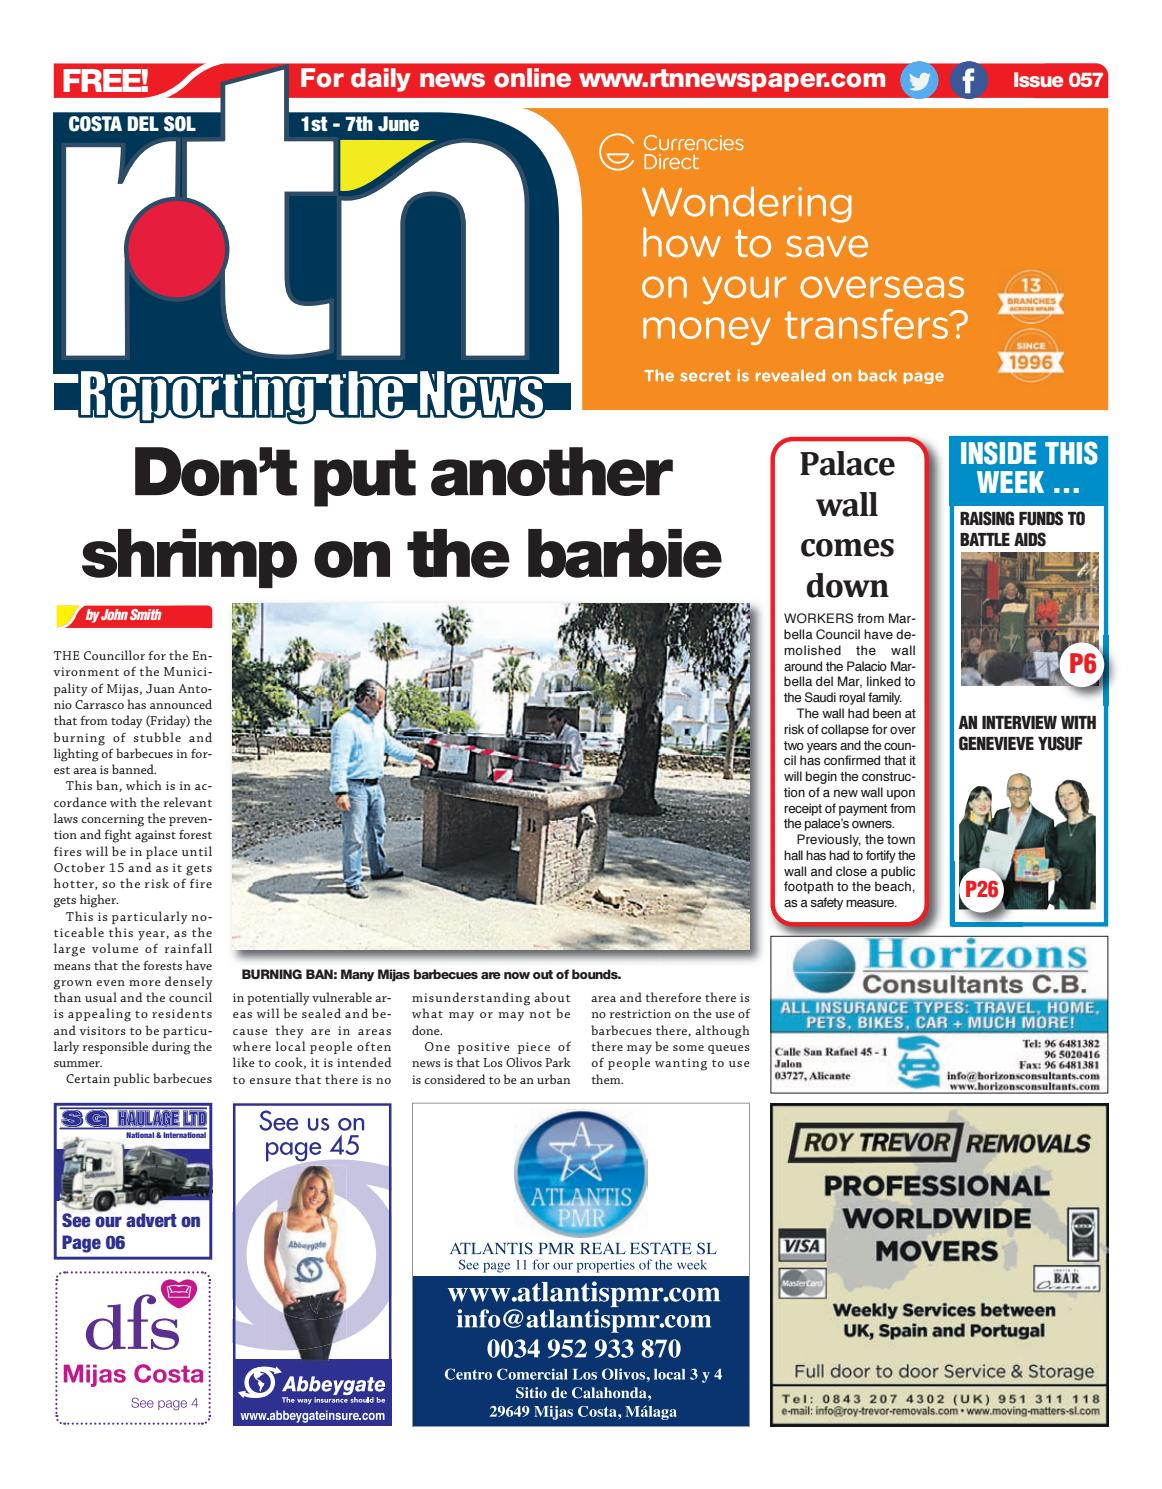 Rtn Newspaper Costa Del Sol 1 7 June 2018 Issue 057 By